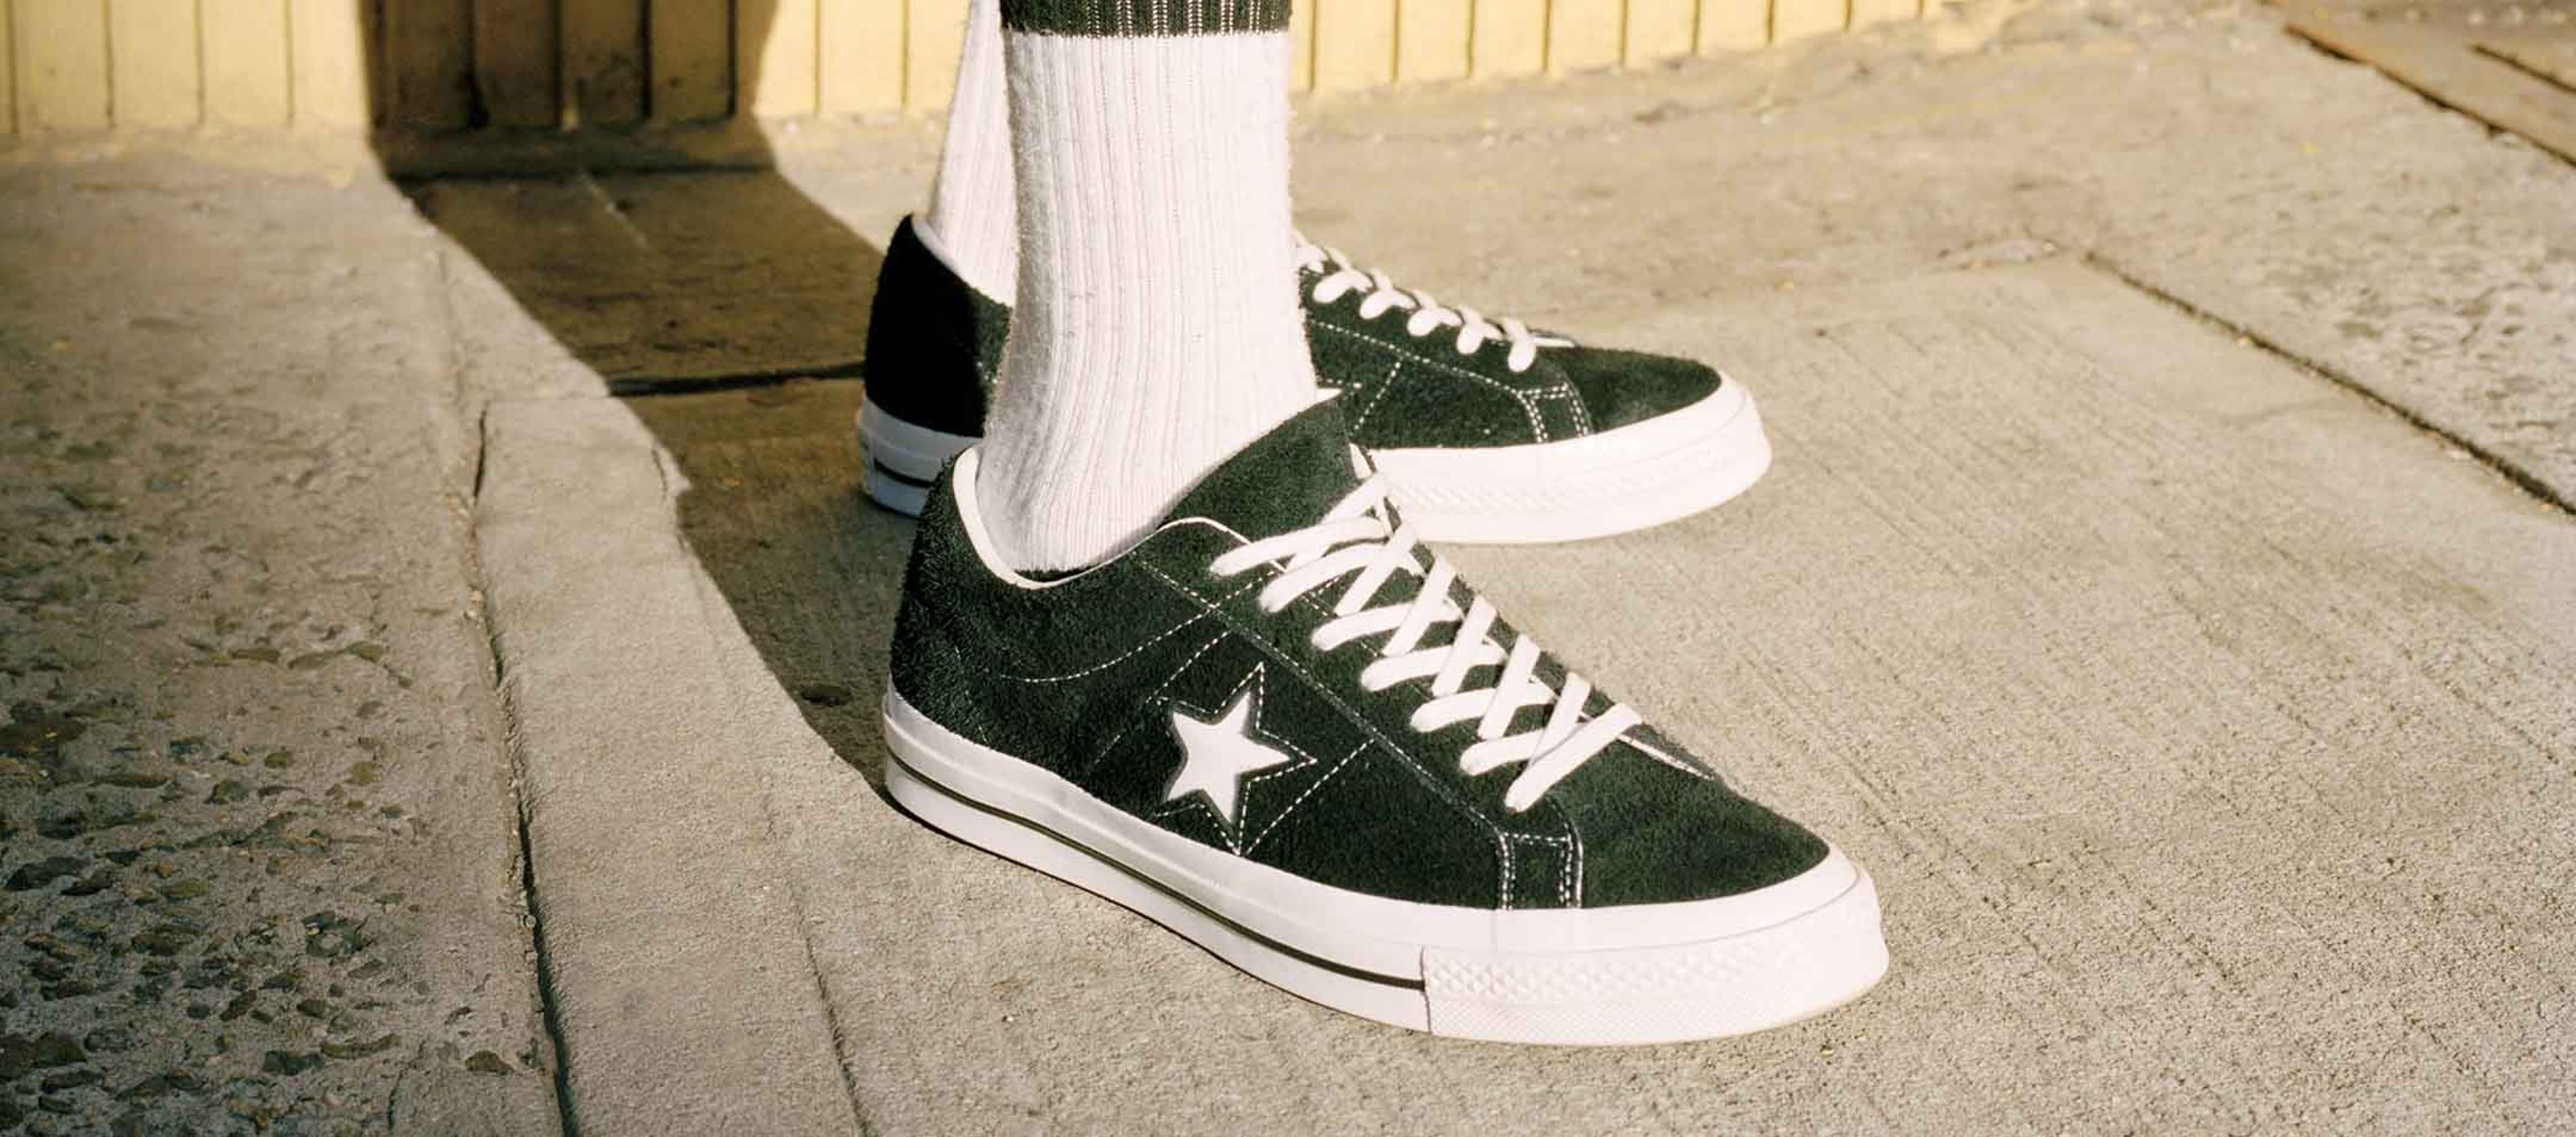 46bd68dfe933 These  90s-Era Sneakers Are Officially Cool Again - ONE37pm